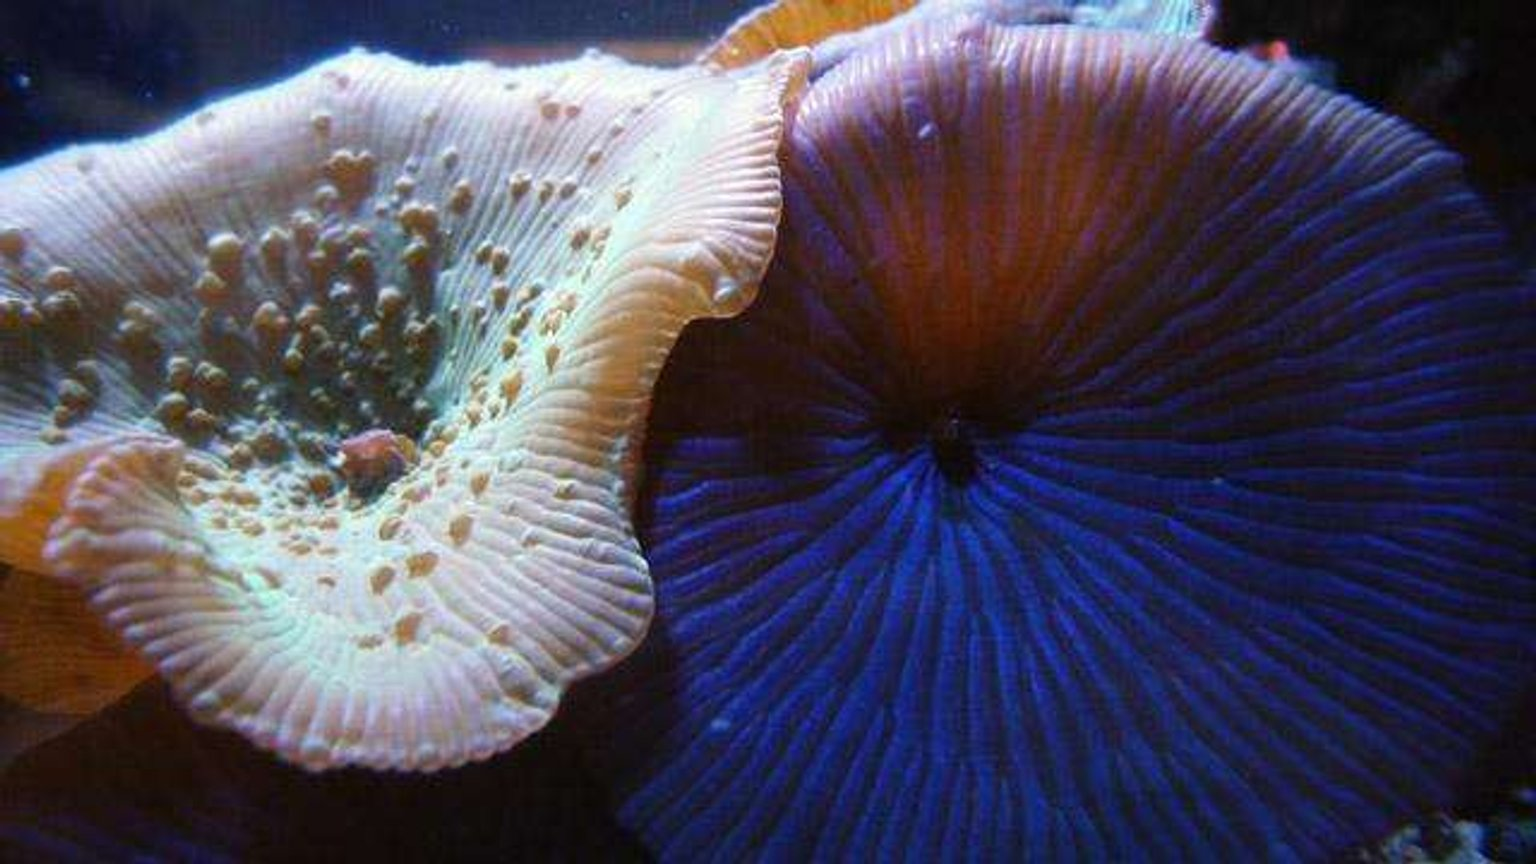 corals inverts - actinodiscus sp. - green striped mushroom stocking in 150 gallons tank - close up pic of mushroom